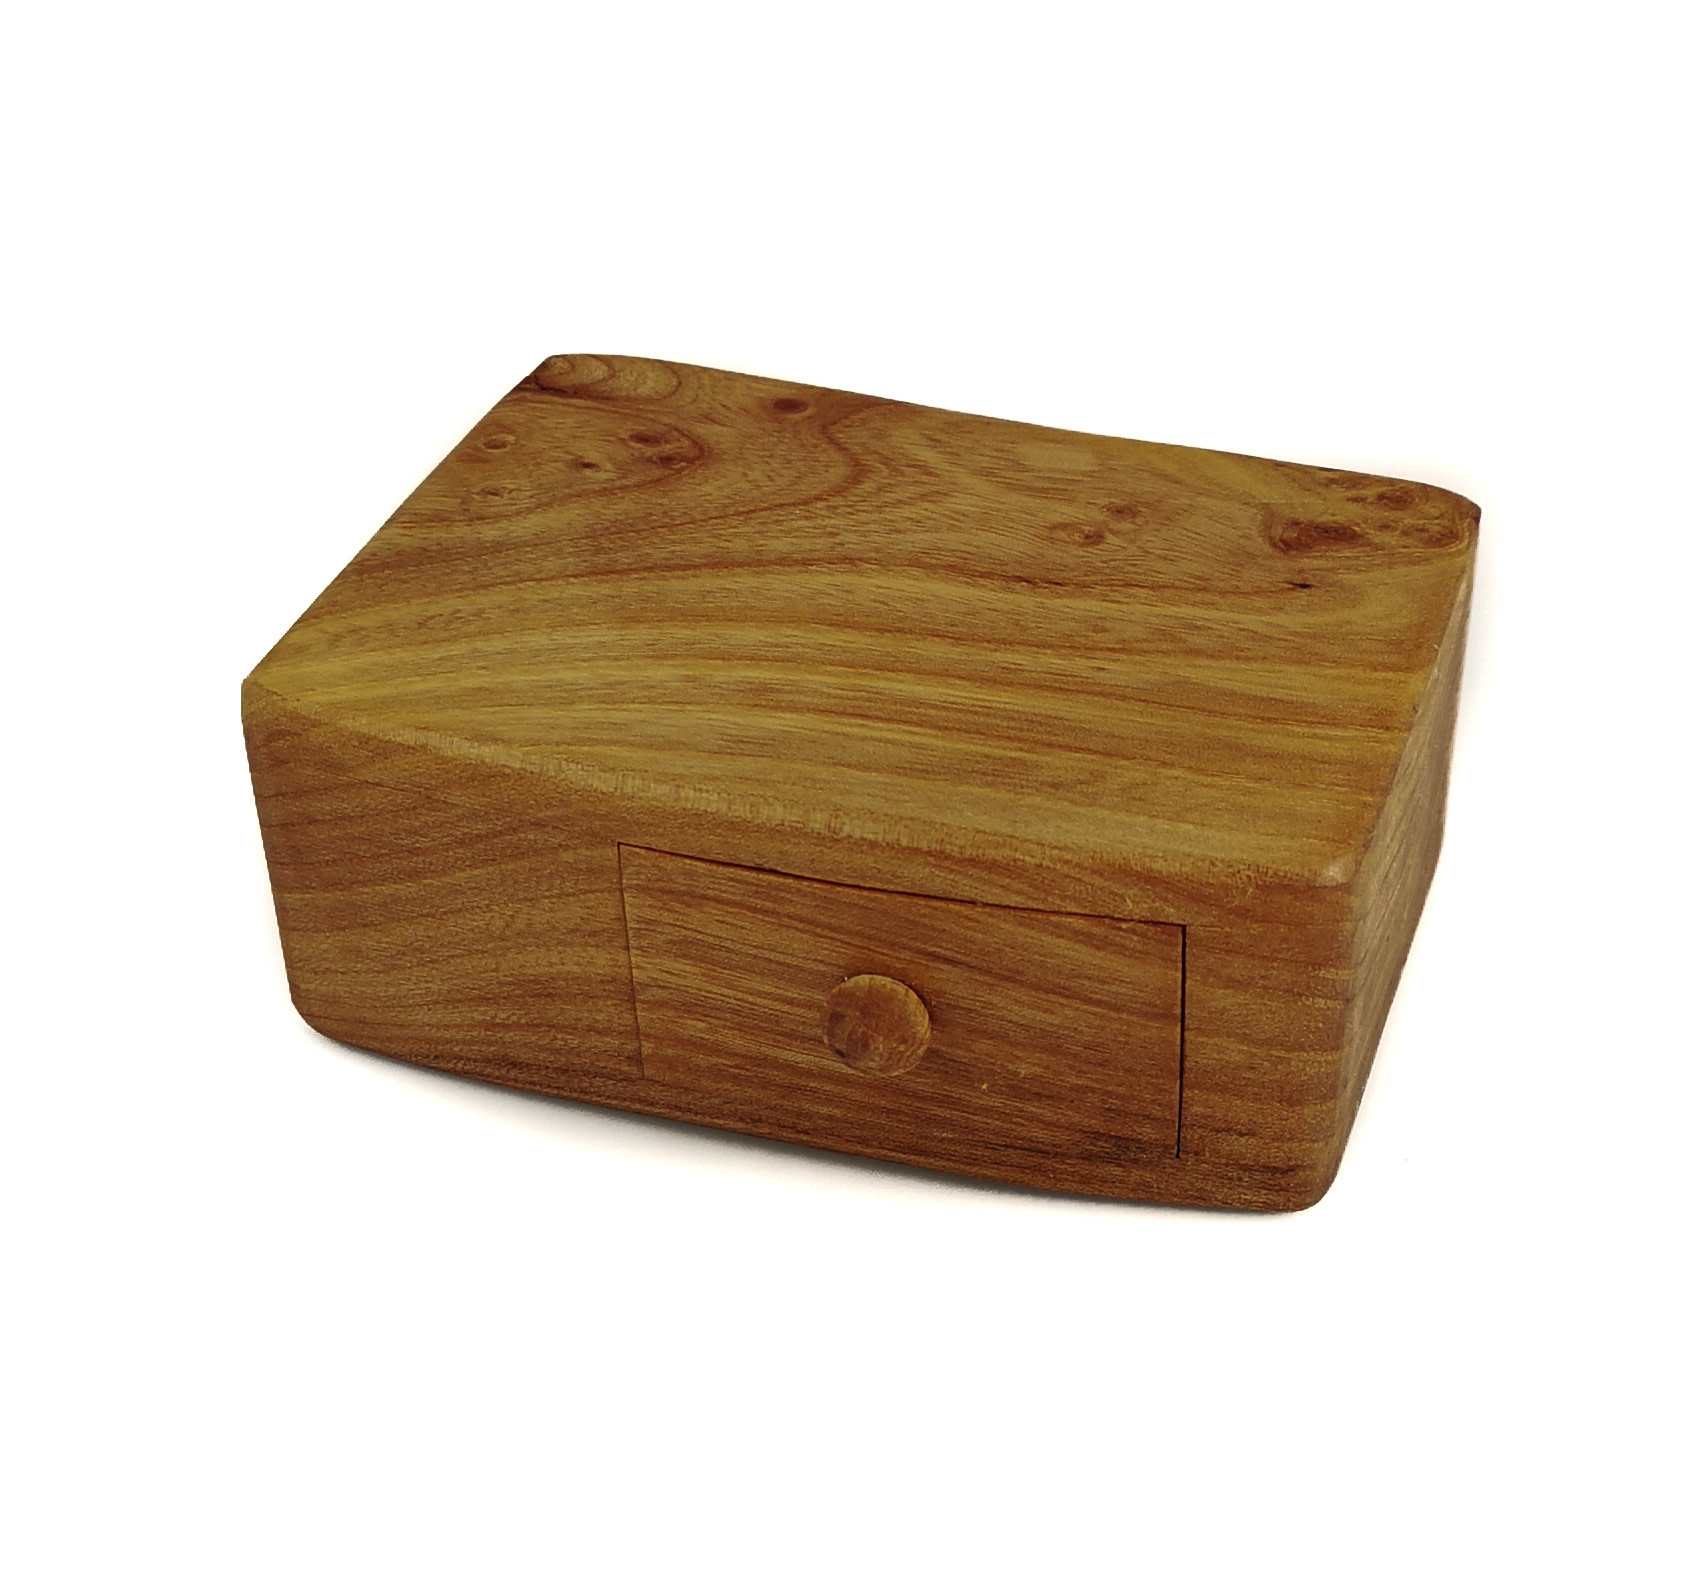 02 Box Yew Tree Wood Box Single Drawer With Secret Drawer 02 - Wood And Horn - Boxes - Water Street Gallery